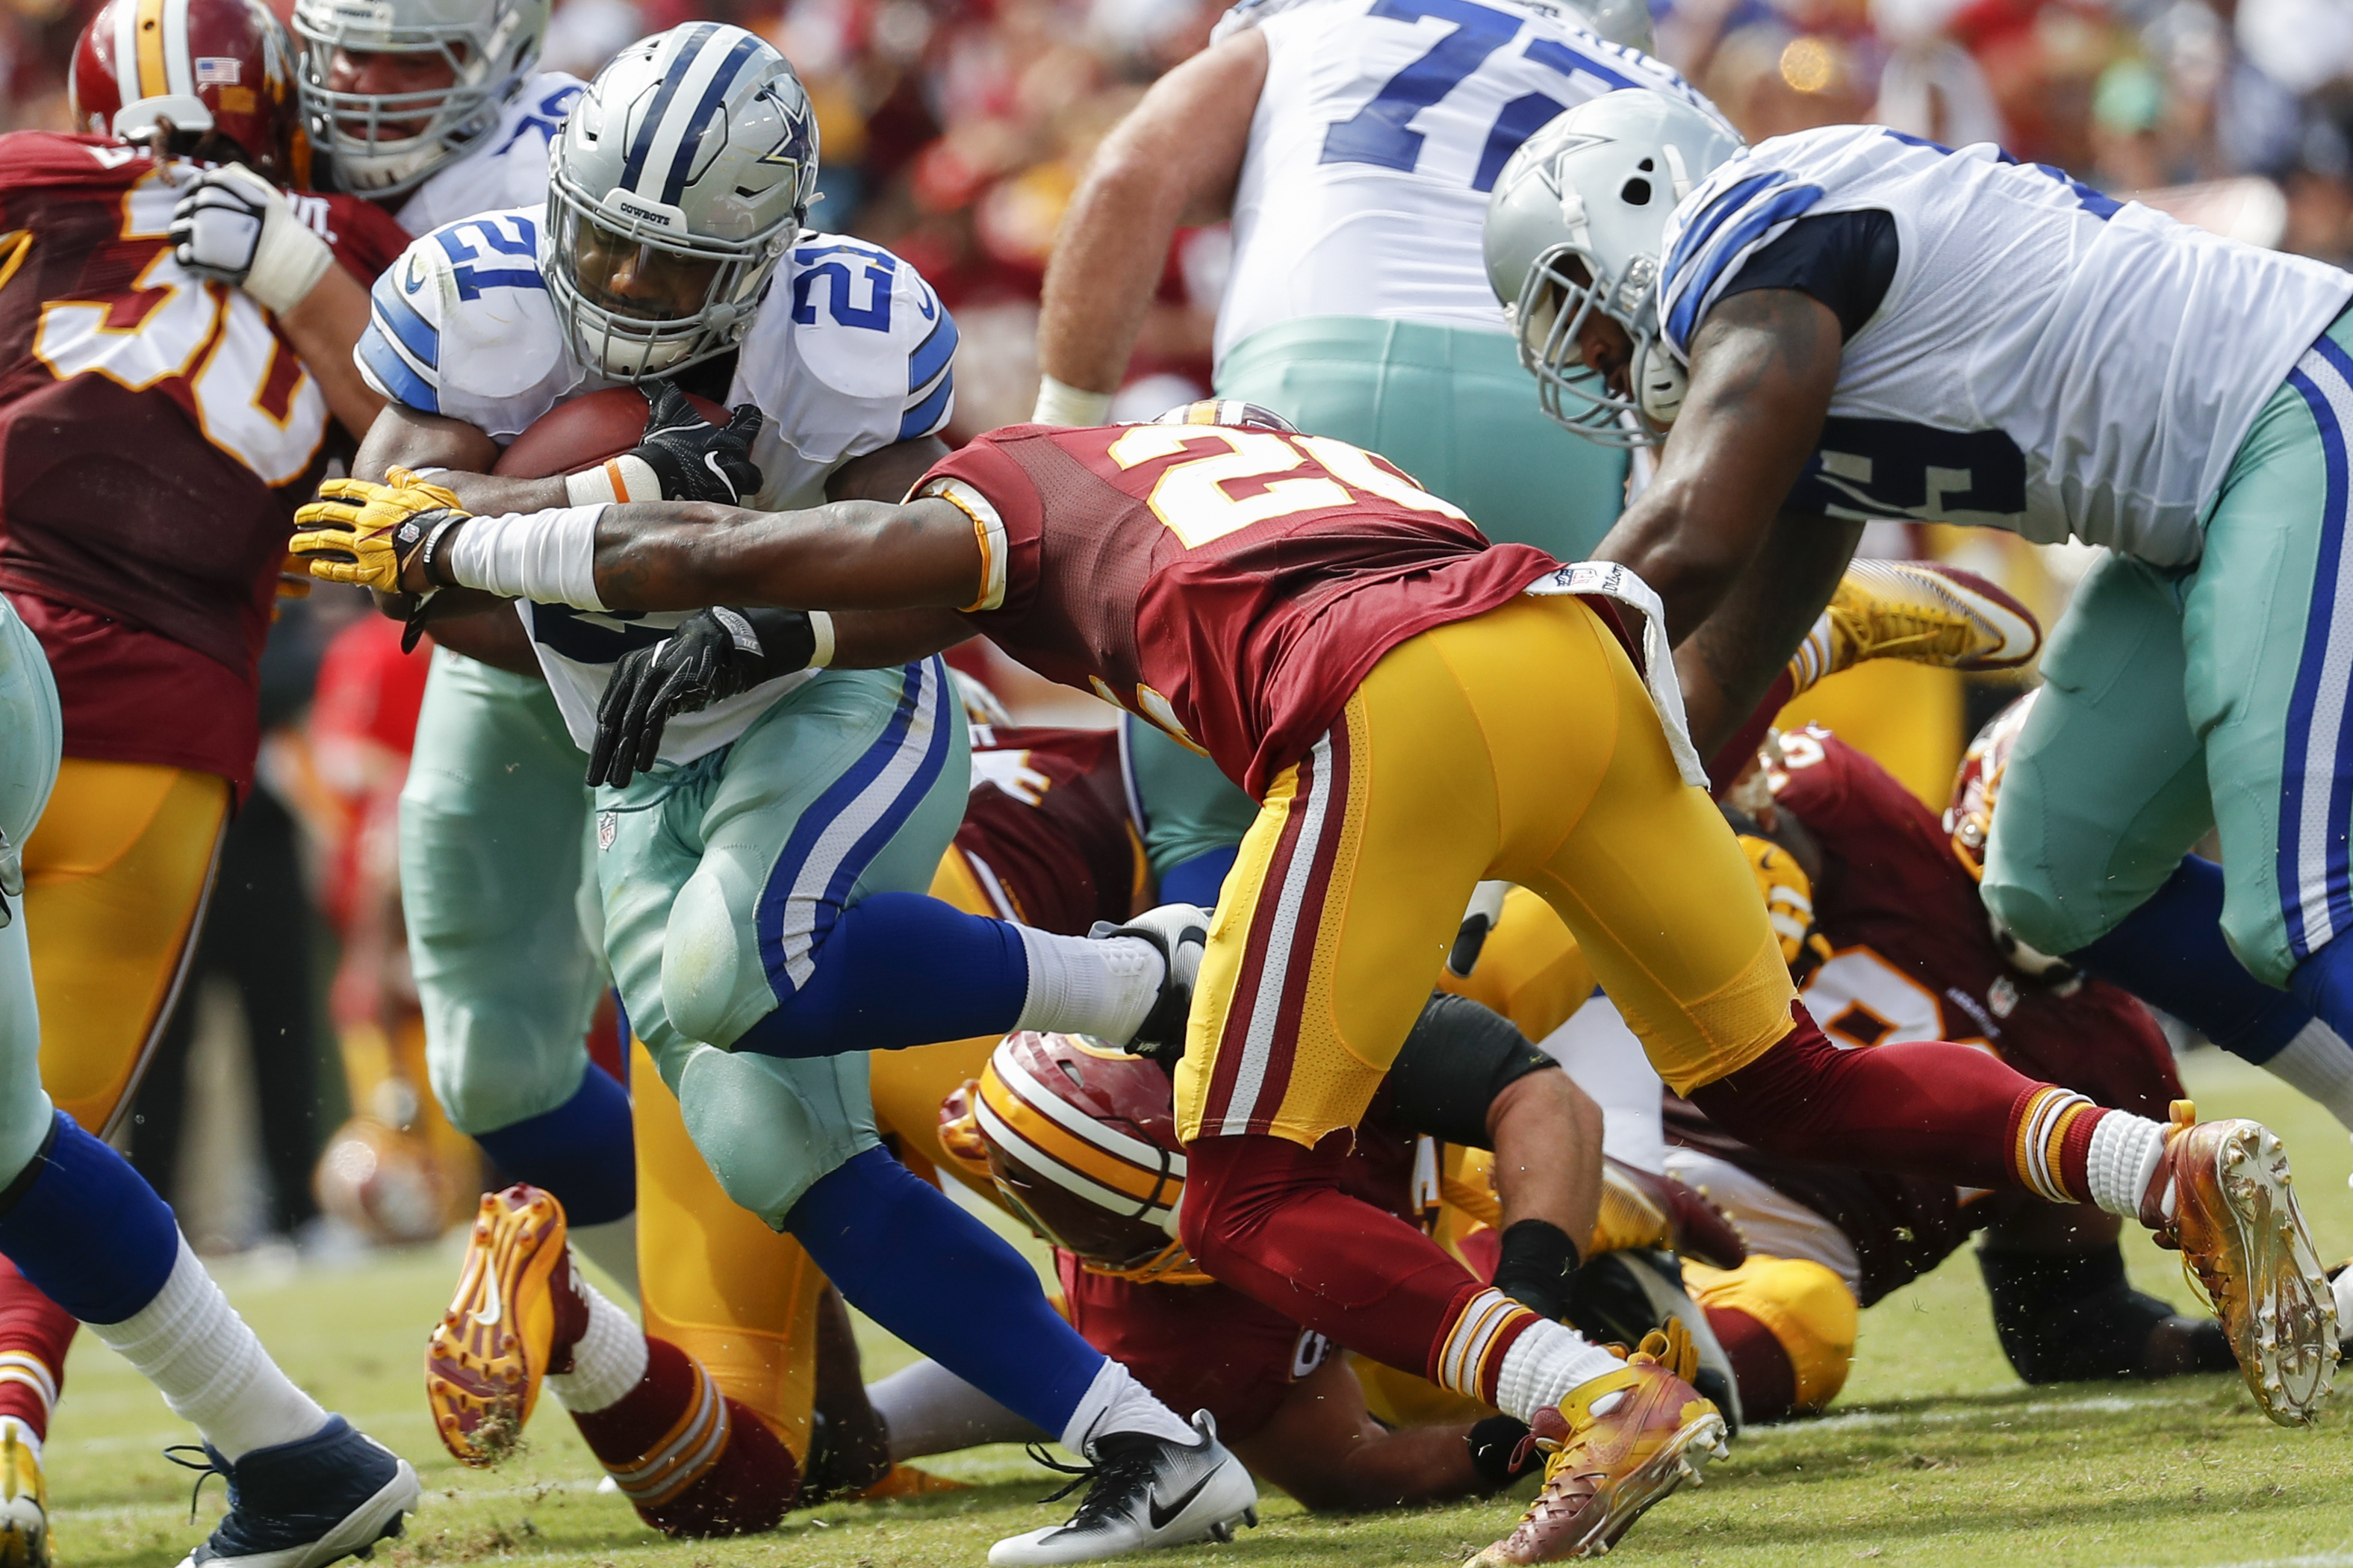 Cowboys_redskins_football.jpeg-2f827